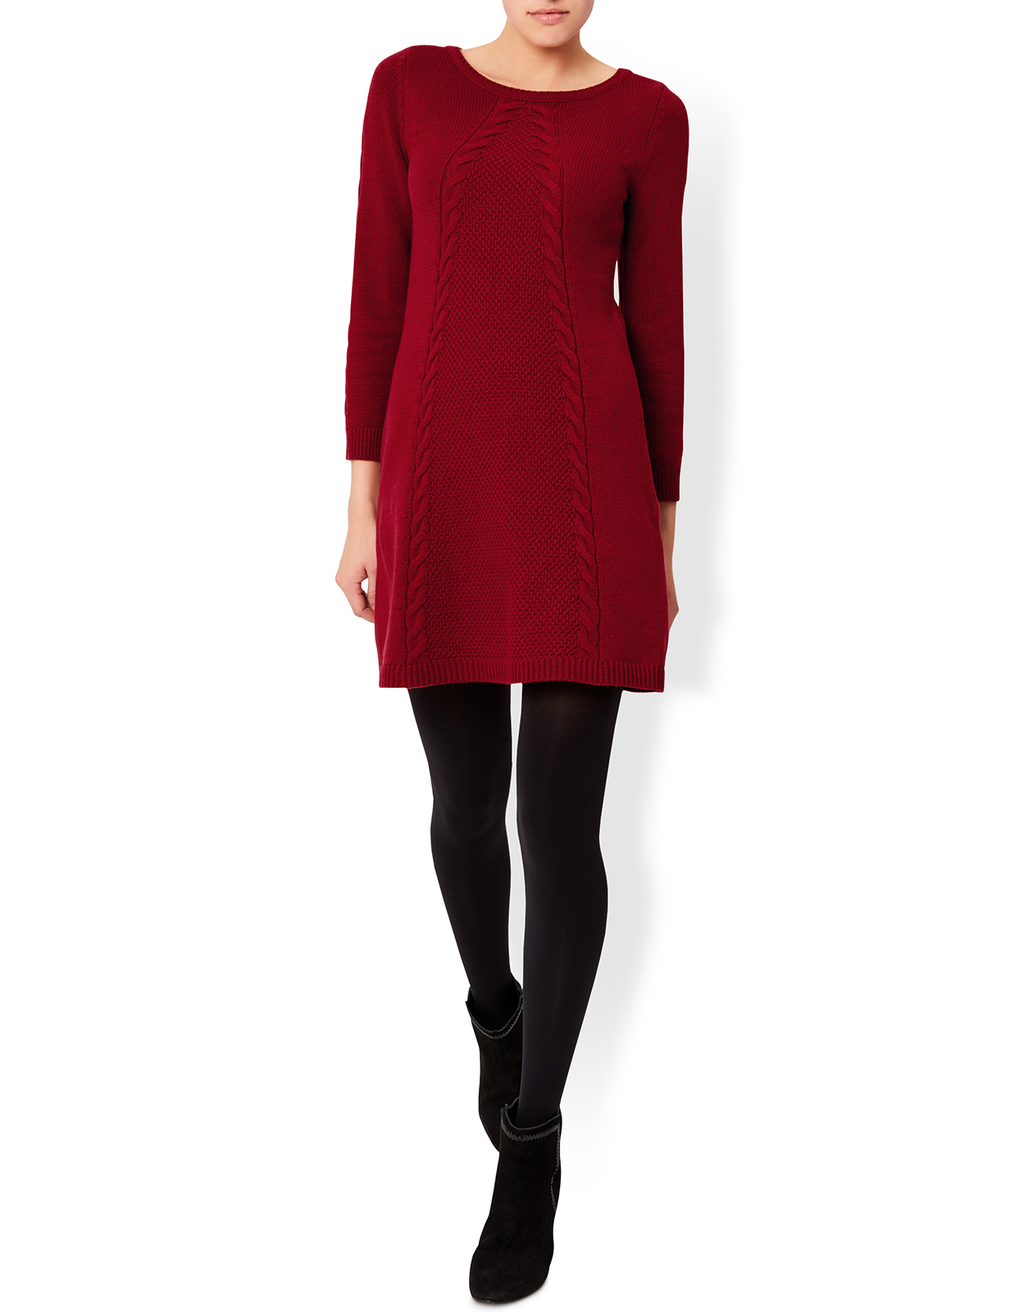 Cacey Cable Knitted Long Sleeve Dress - style: jumper dress; length: mini; neckline: round neck; pattern: cable knit; occasions: casual, creative work; fit: body skimming; fibres: cotton - mix; sleeve length: 3/4 length; sleeve style: standard; texture group: knits/crochet; pattern type: knitted - other; pattern size: standard; predominant colour: raspberry; season: a/w 2016; wardrobe: highlight